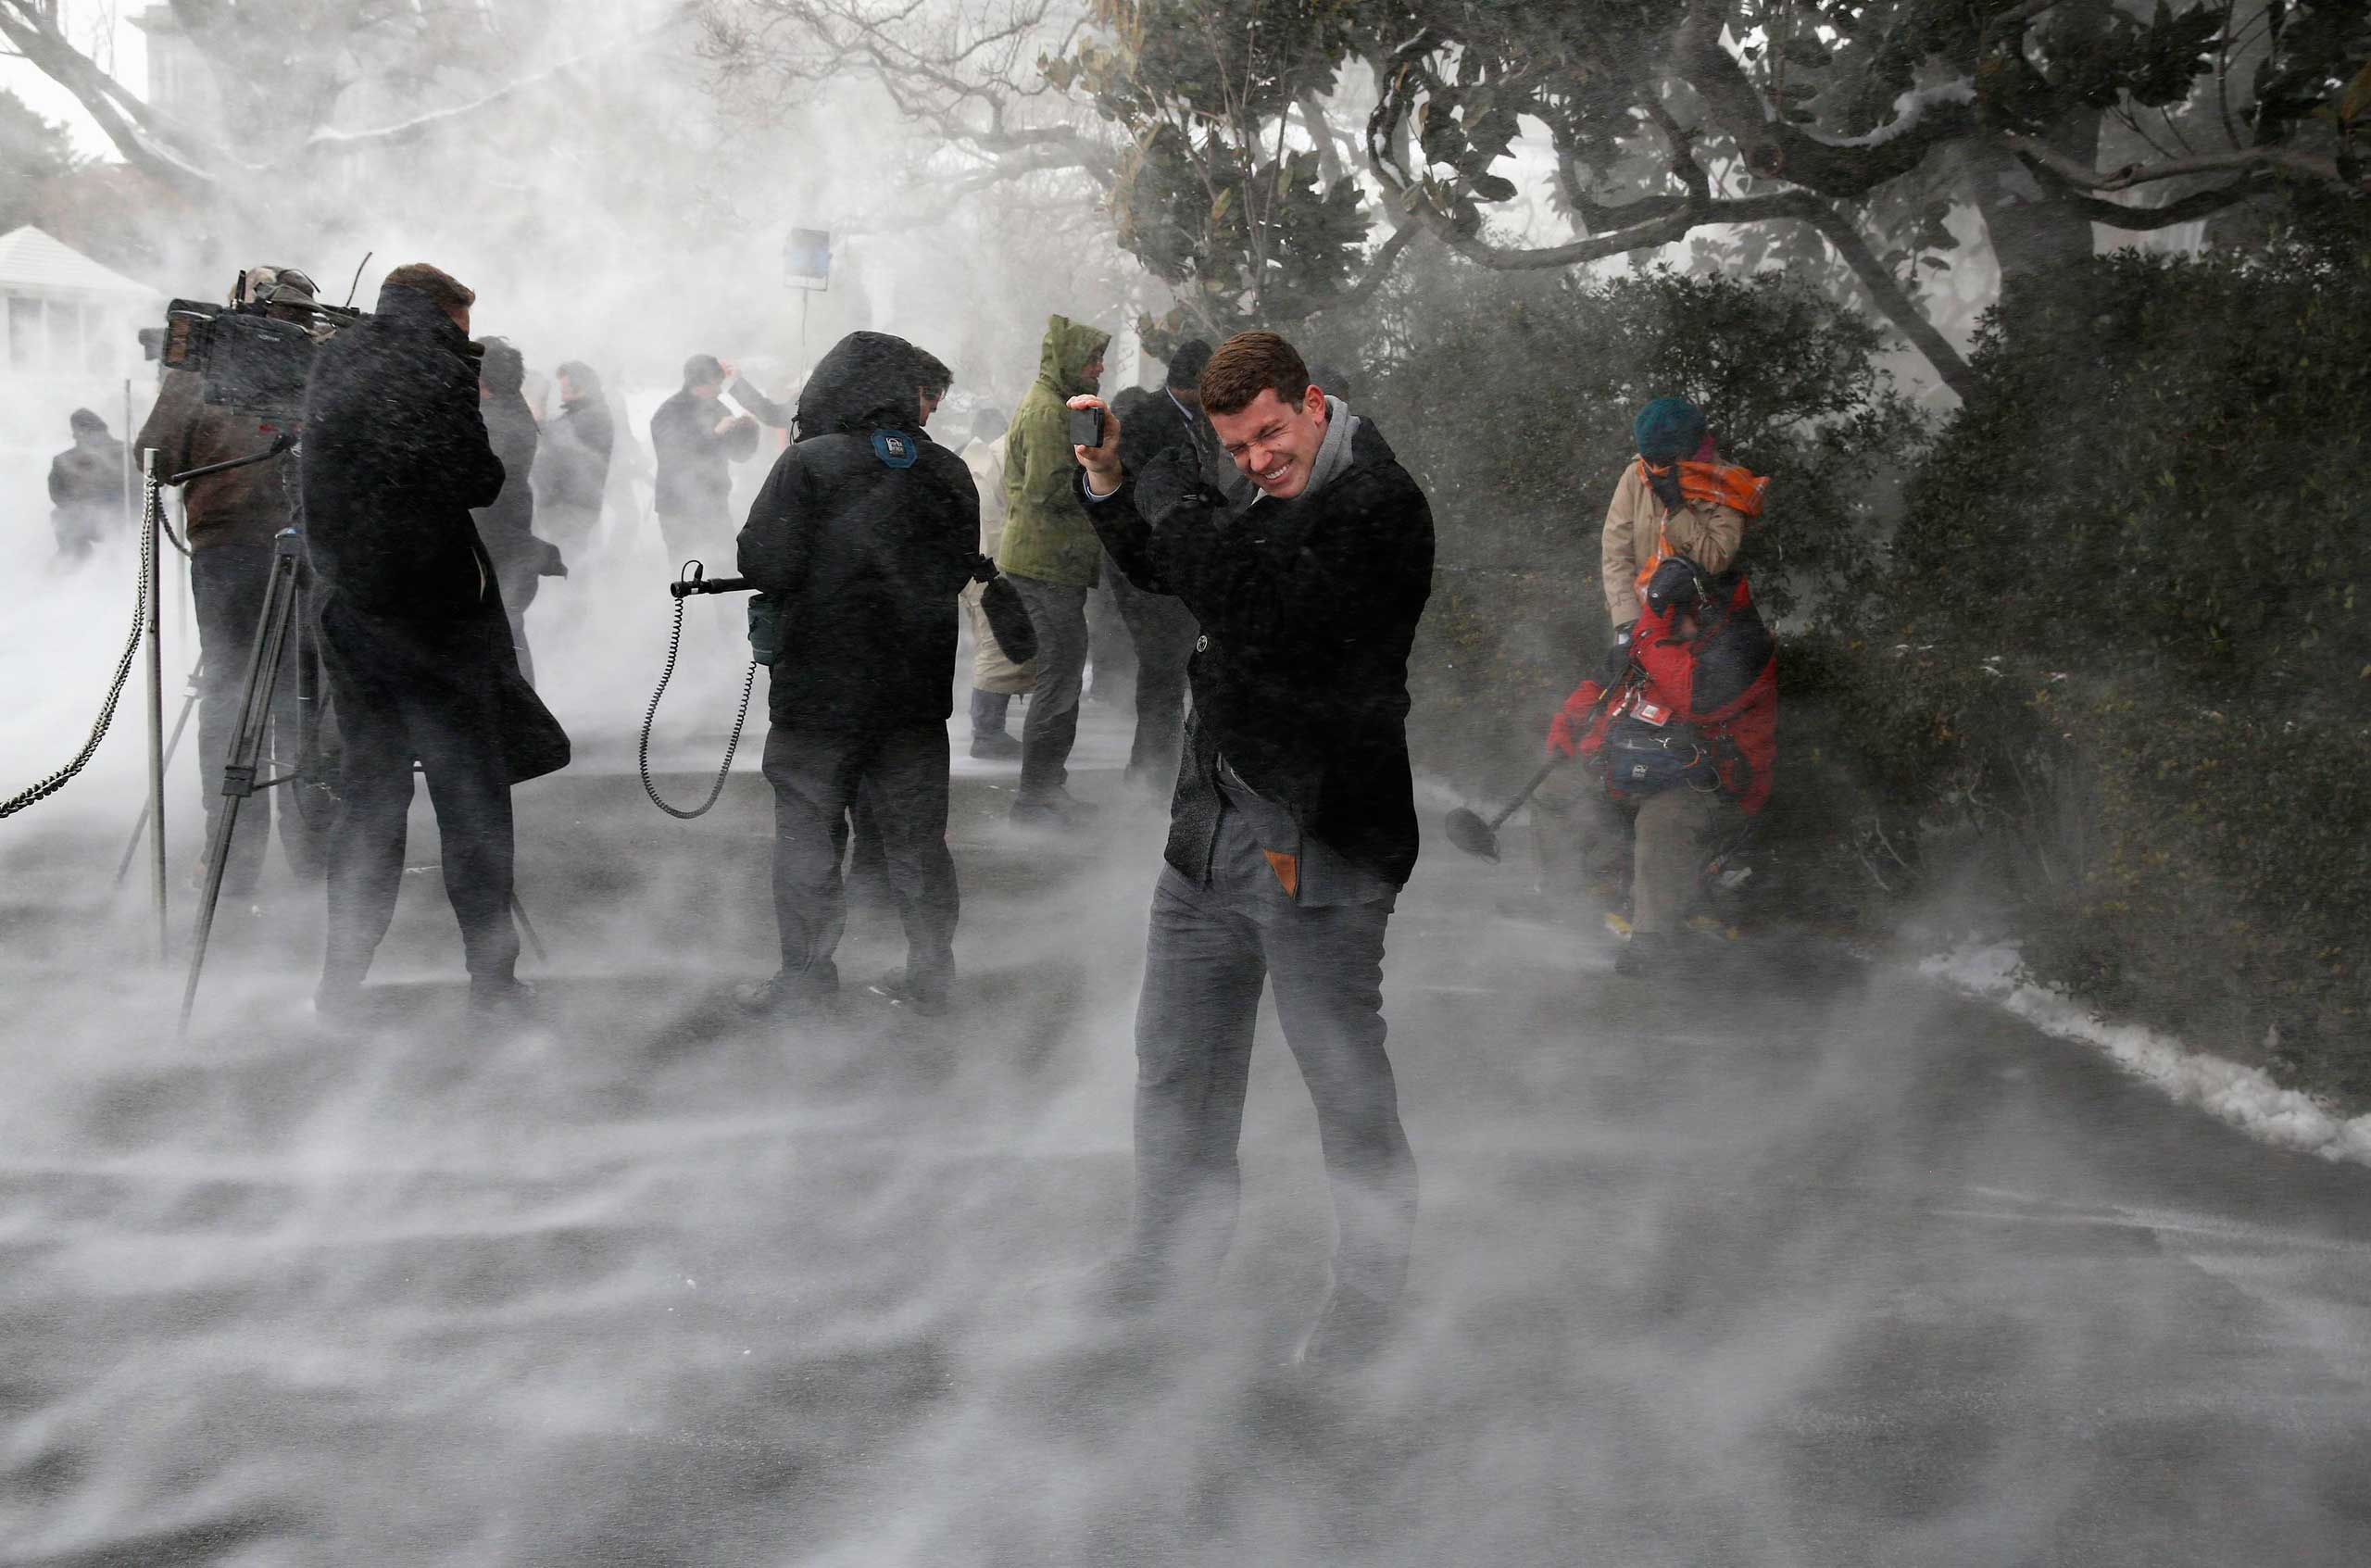 Jan. 7, 2015. Members of the press, including NBC's Evan Dixon, face the blowing snow caused by Marine One as it landed on the South Lawn before picking up U.S. President Barack Obama at the White House in Washington, D.C.